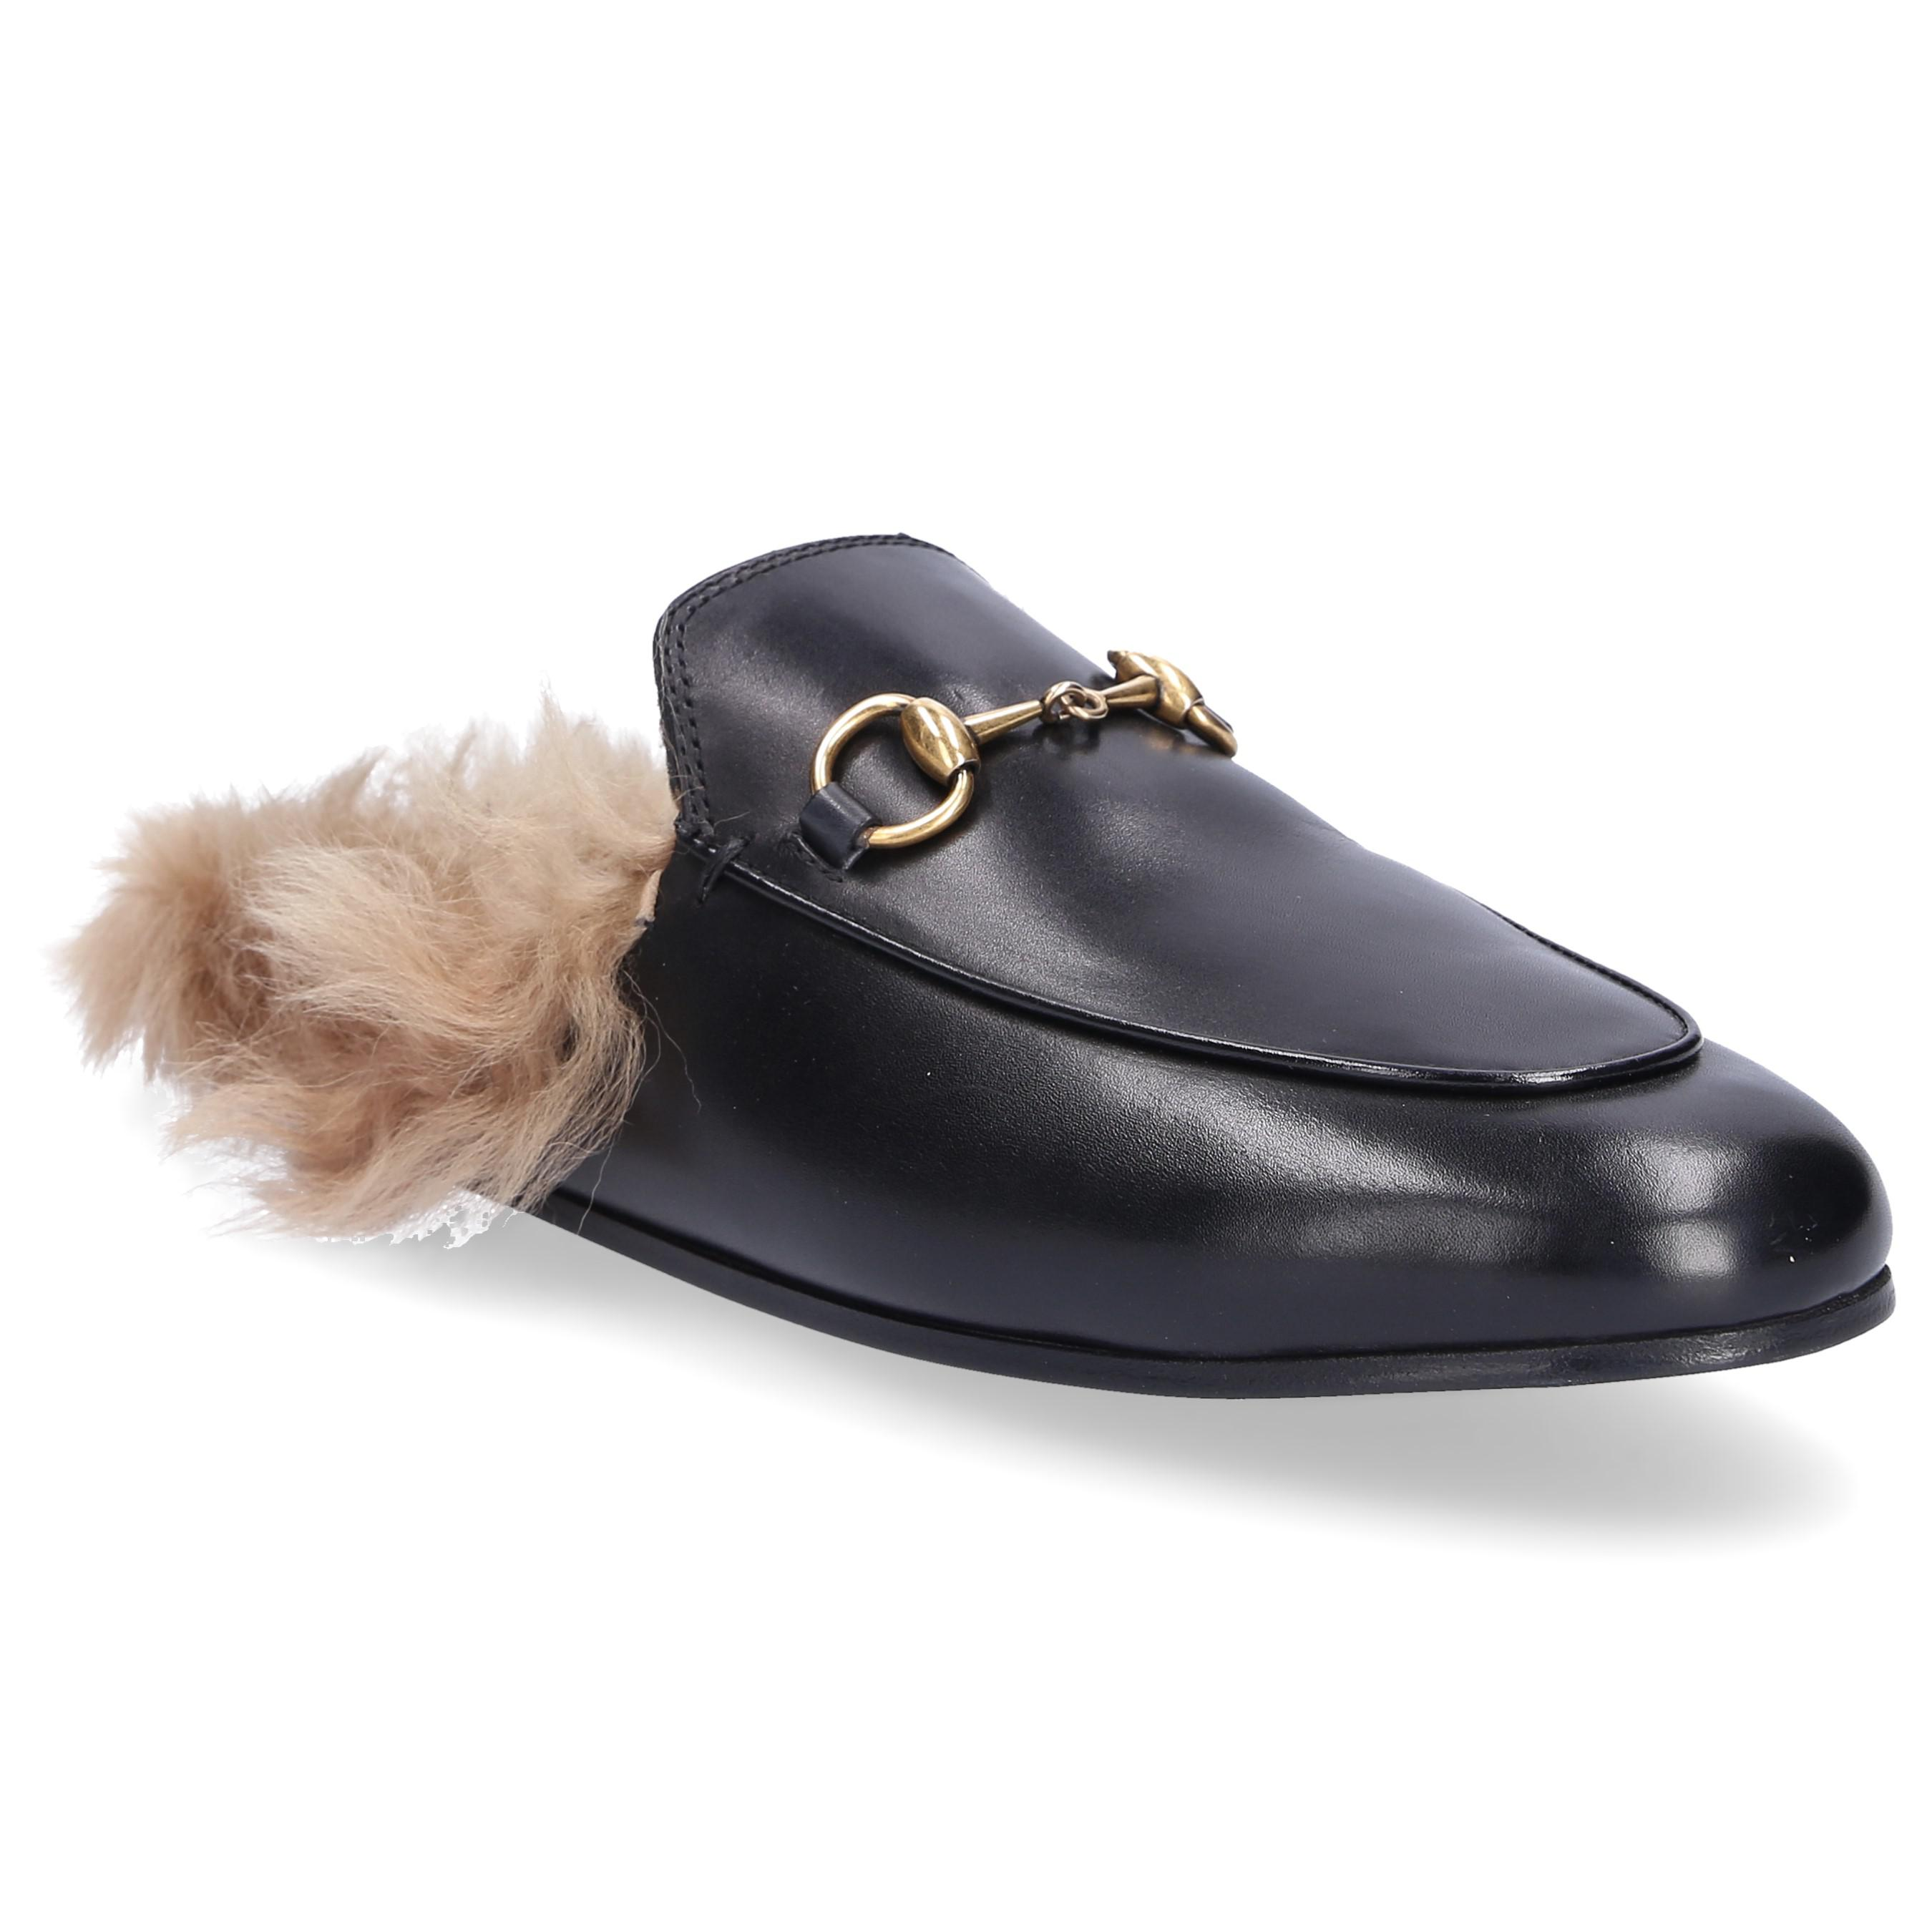 250372d57 Lyst - Gucci Slip On Shoes Dkhh0 Lamb Fur Smooth Leather Horsebit ...